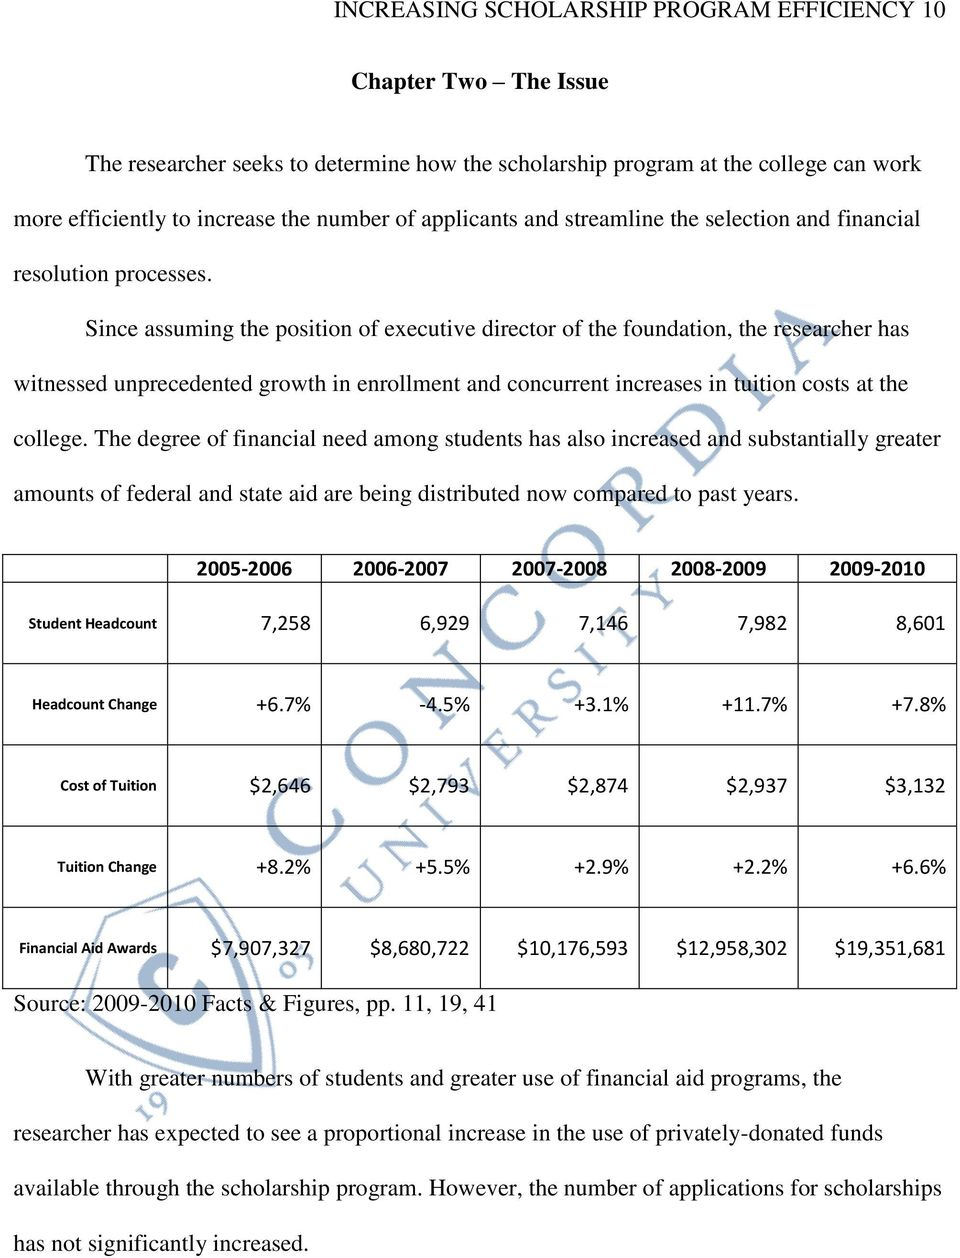 Since assuming the position of executive director of the foundation, the researcher has witnessed unprecedented growth in enrollment and concurrent increases in tuition costs at the college.